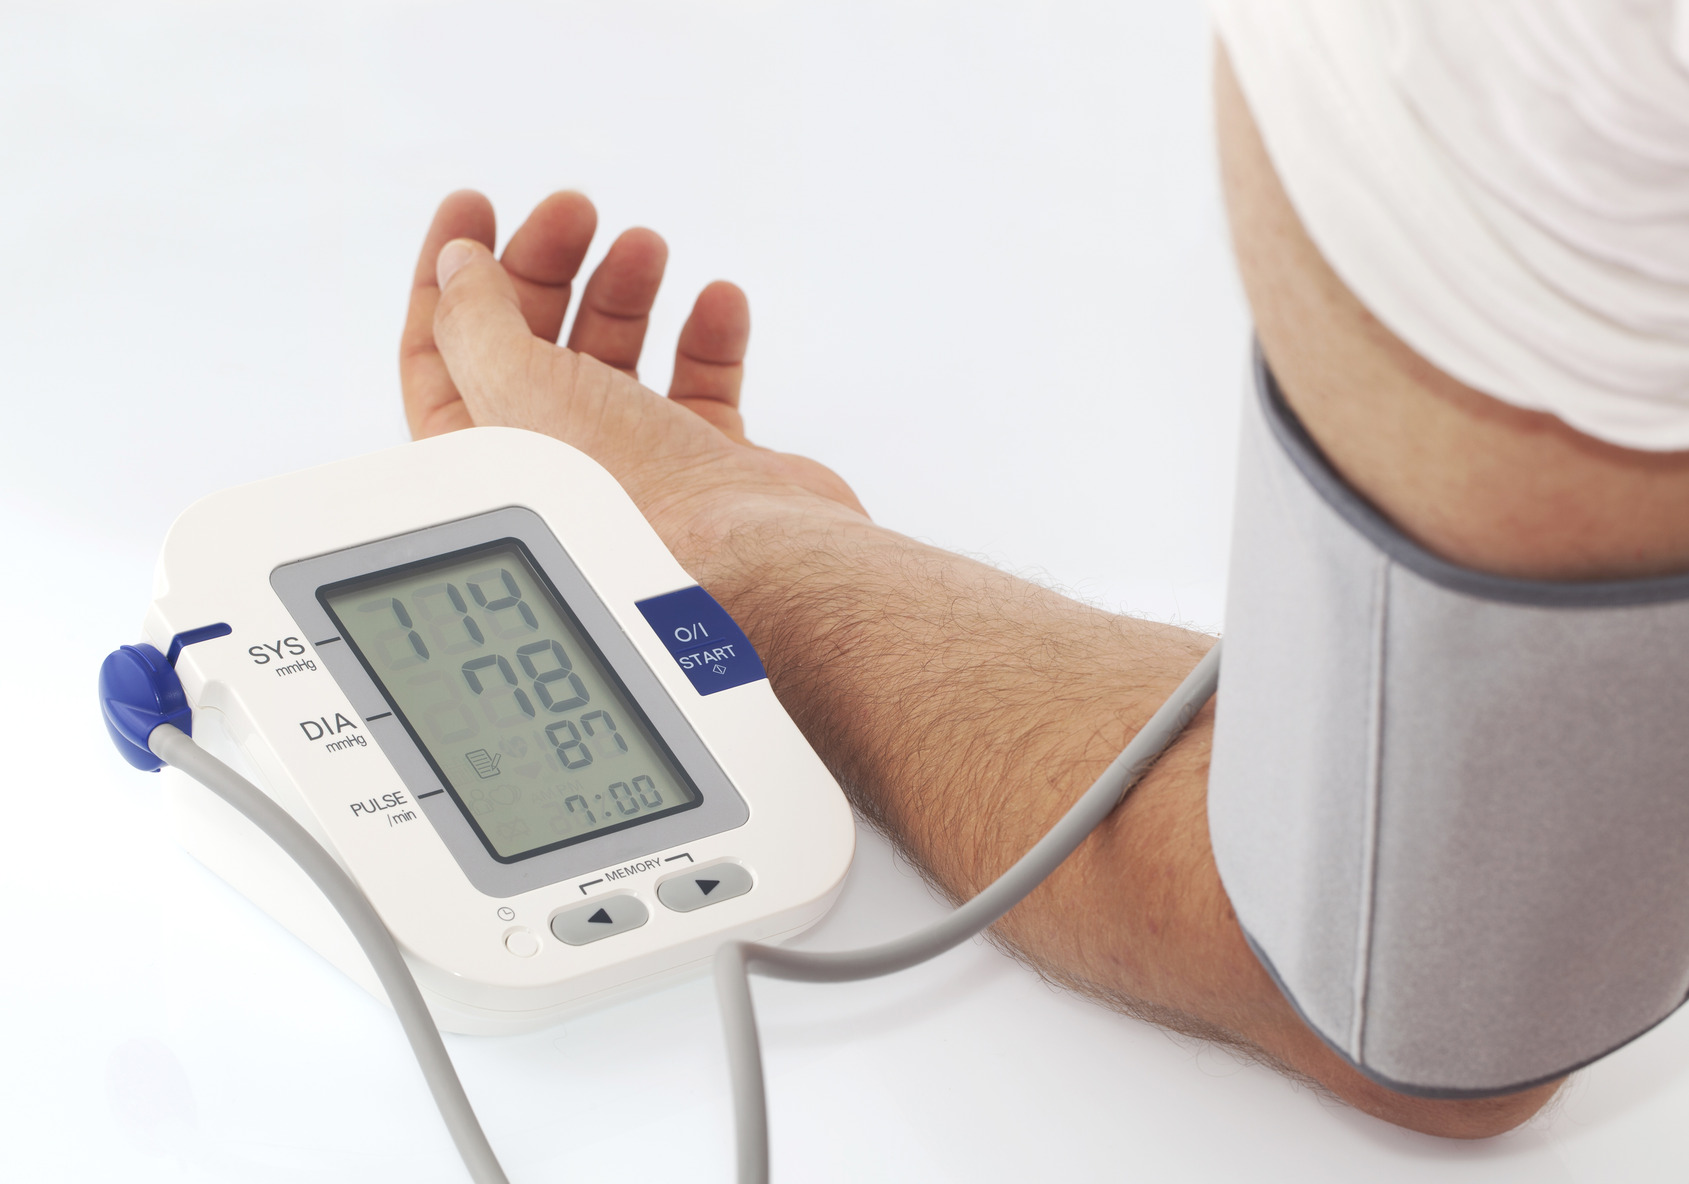 Photo credit: cheyennezj / Photodune.